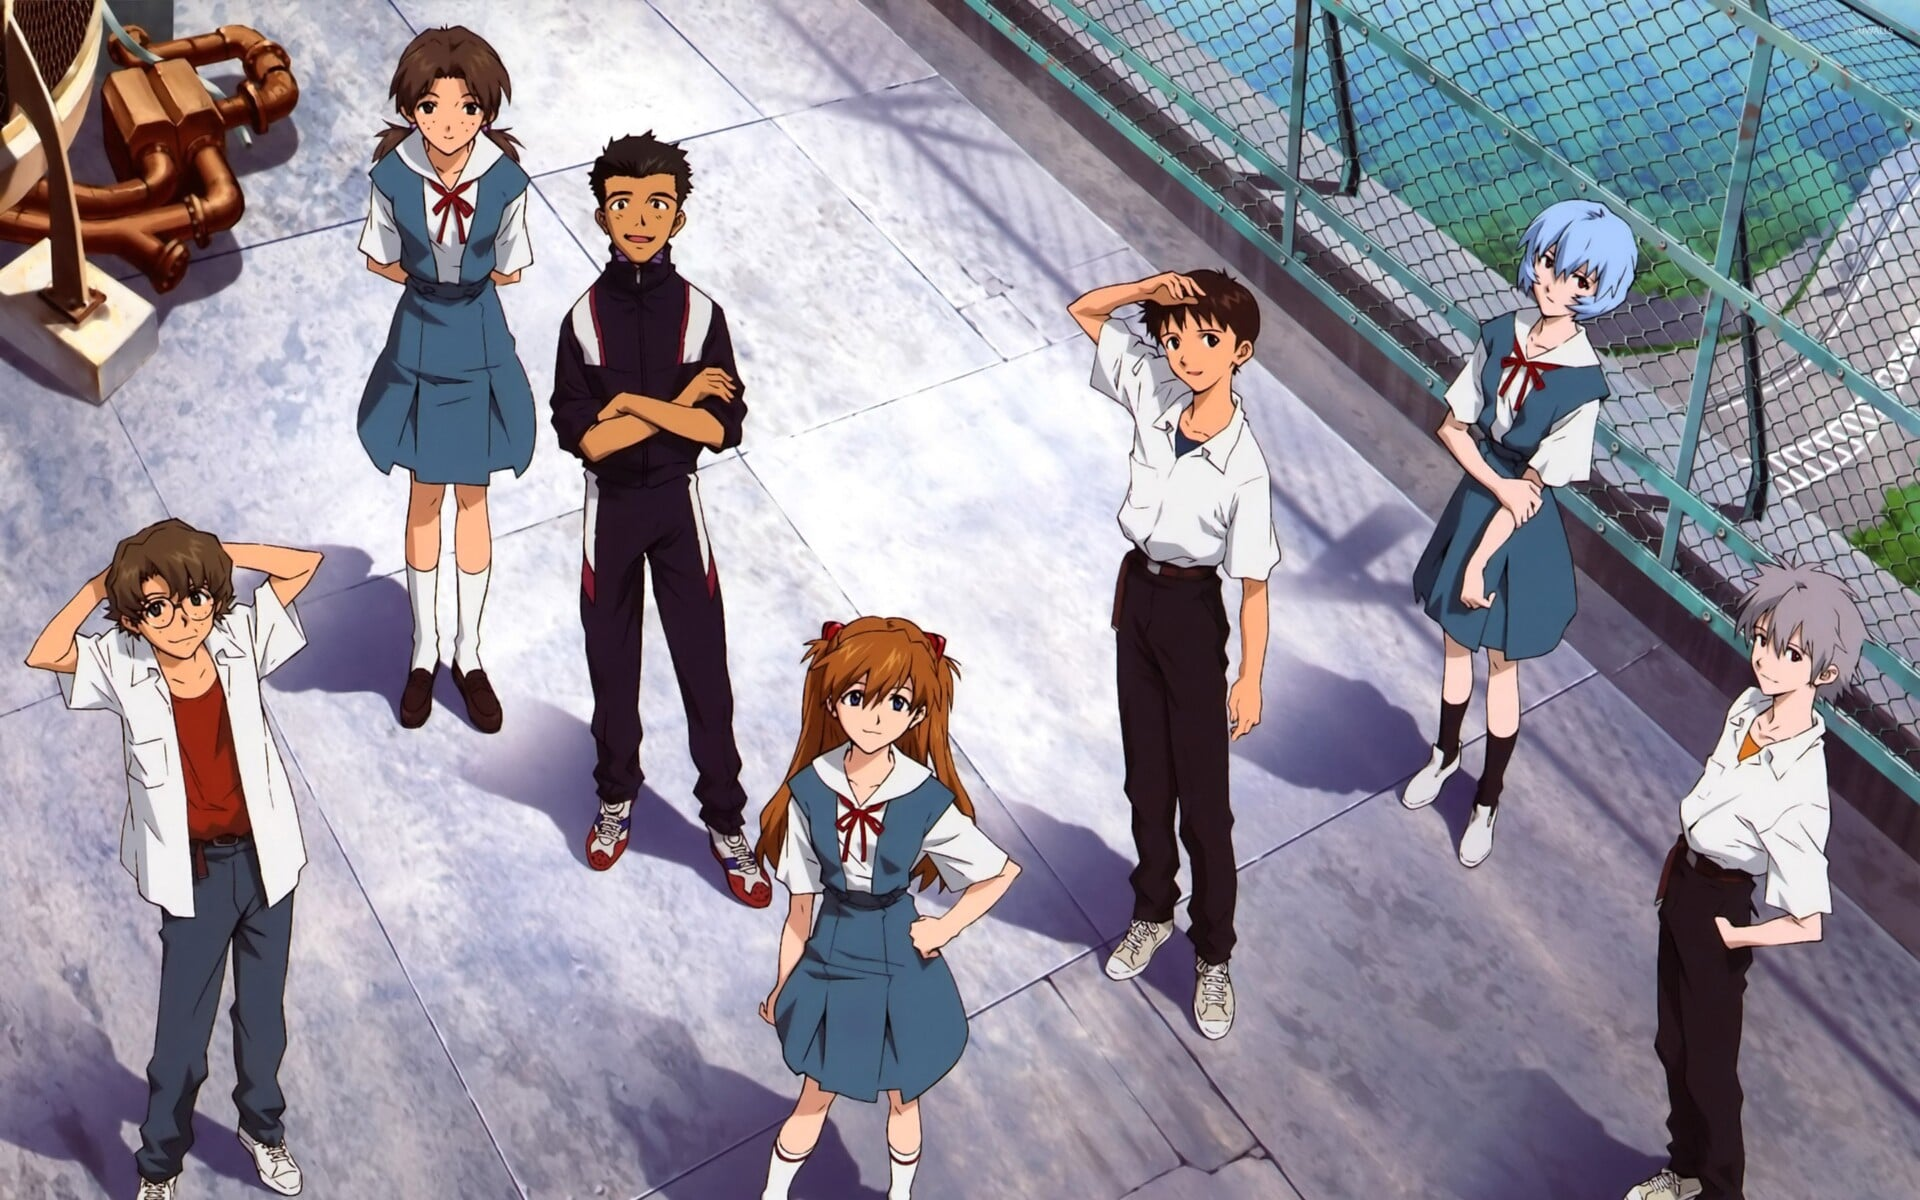 Hideaki Anno anime films Rebuild Thrice Upon a Time Imagines an Ending Beyond Neon Genesis Evangelion